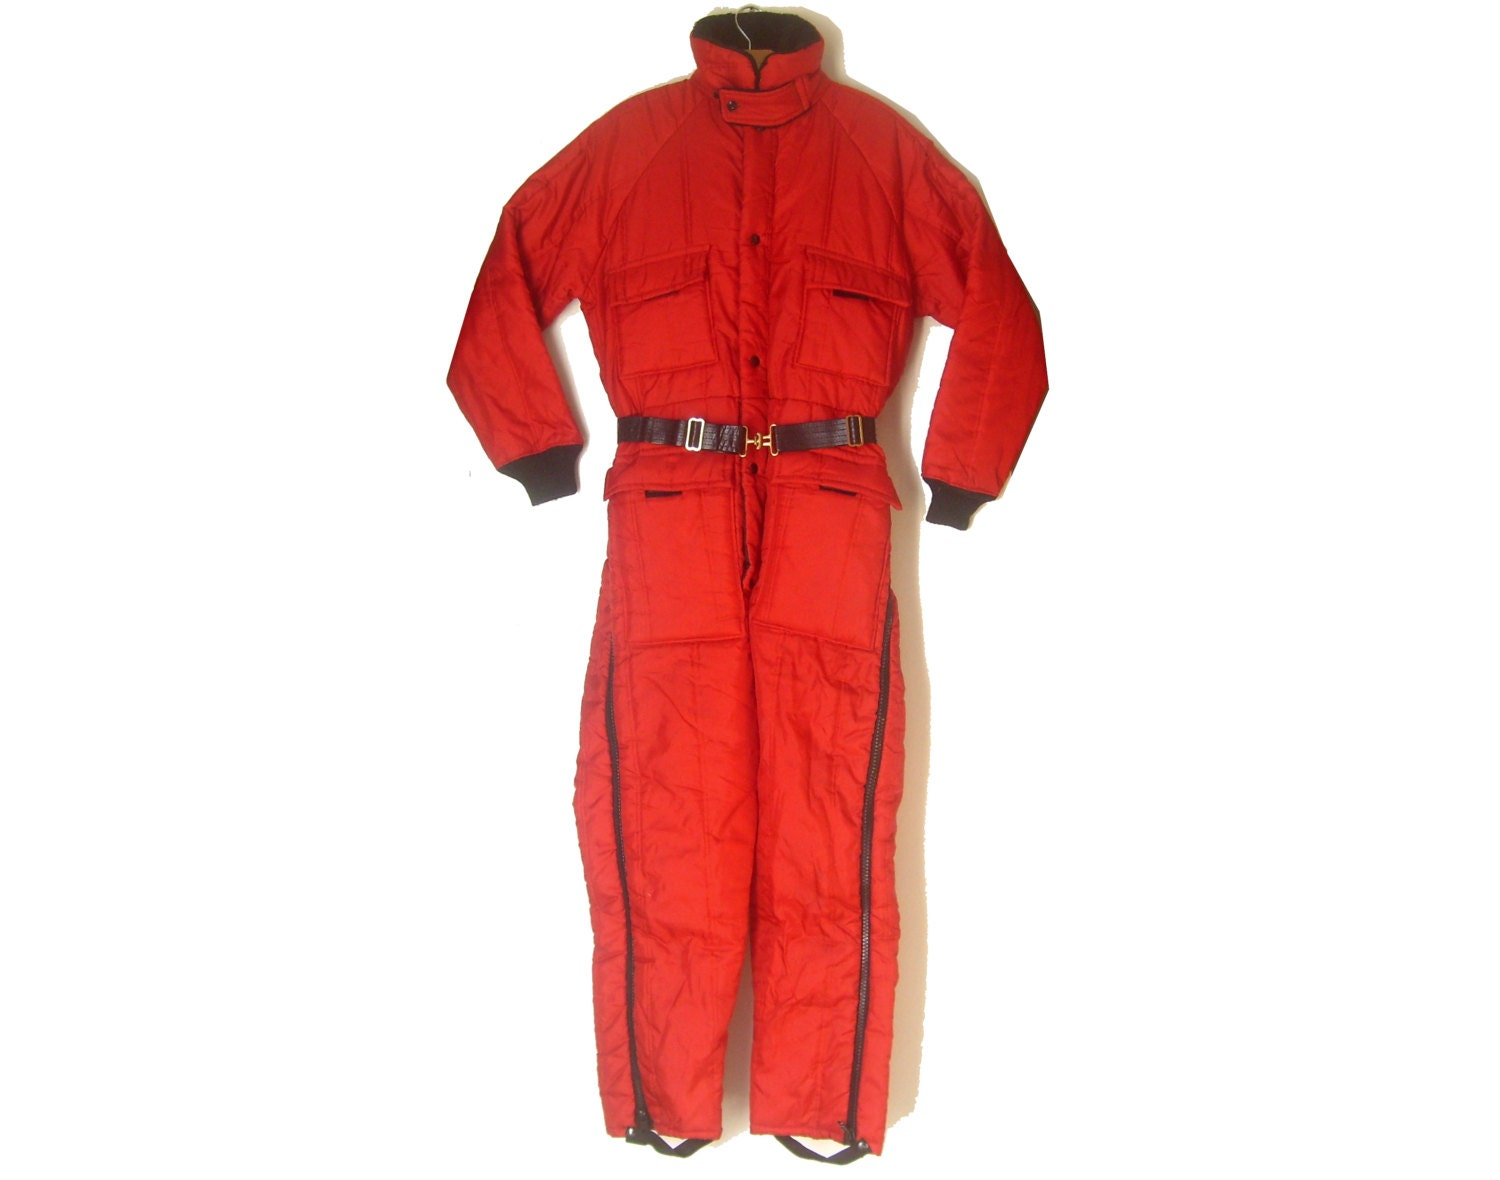 Vintage Snowmobile Suit Insulated Walls Coveralls Red Blizzard